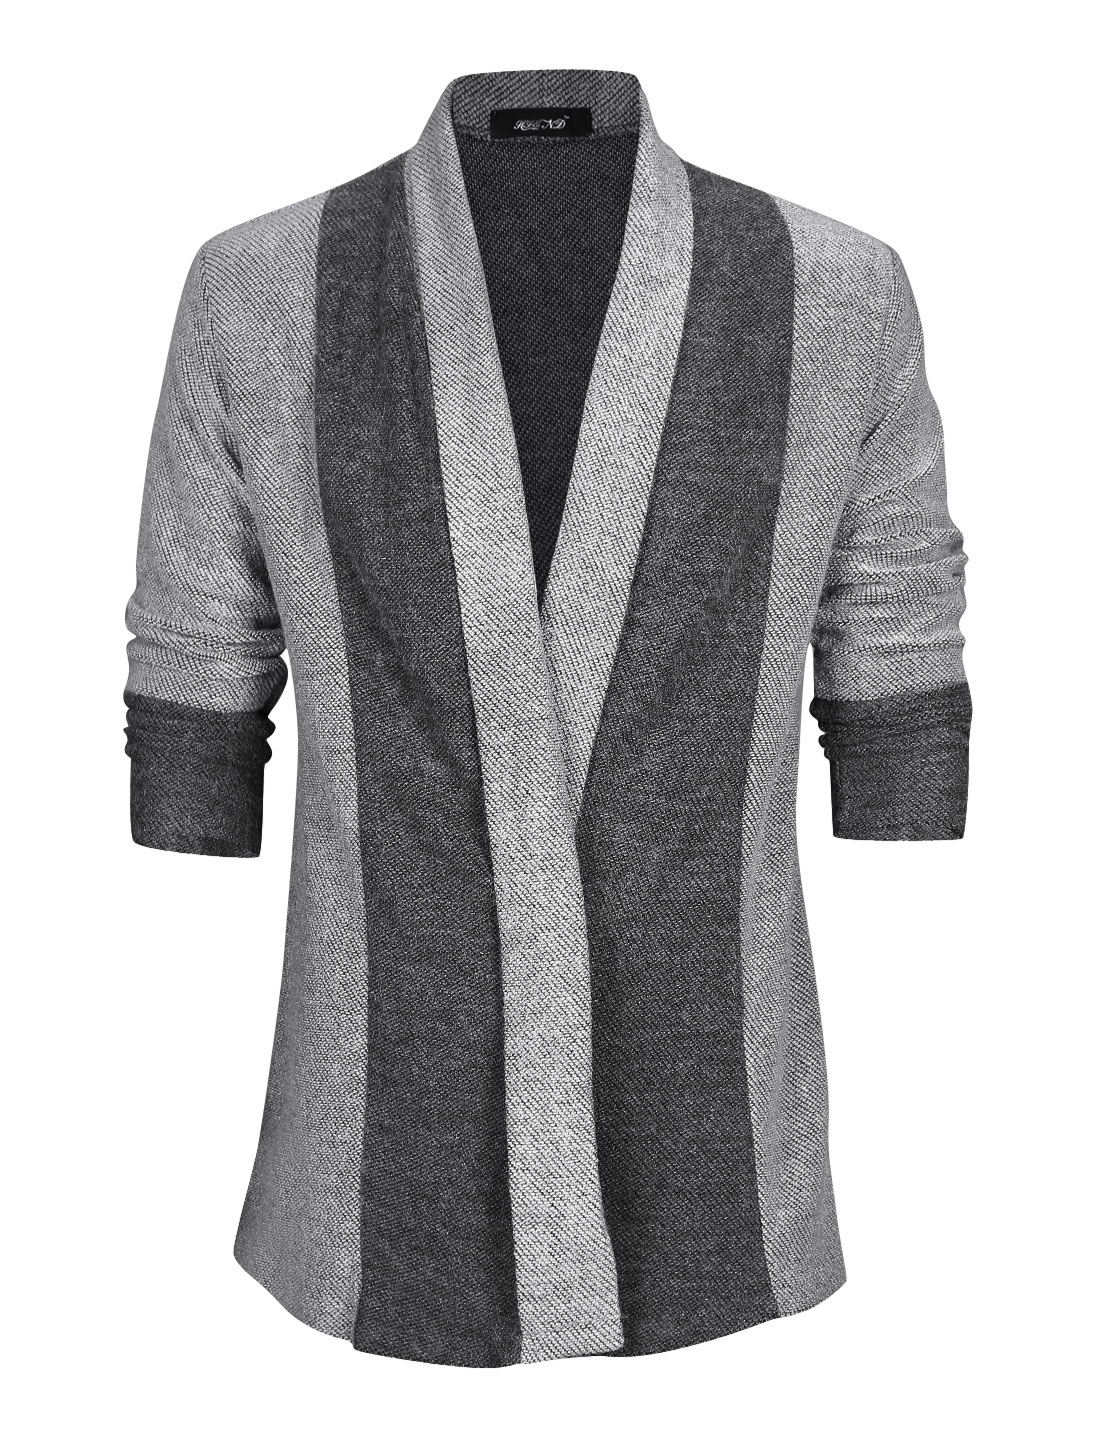 Men Shawl Collar Color Block Casual Long Knit Cardigan Light Gray M